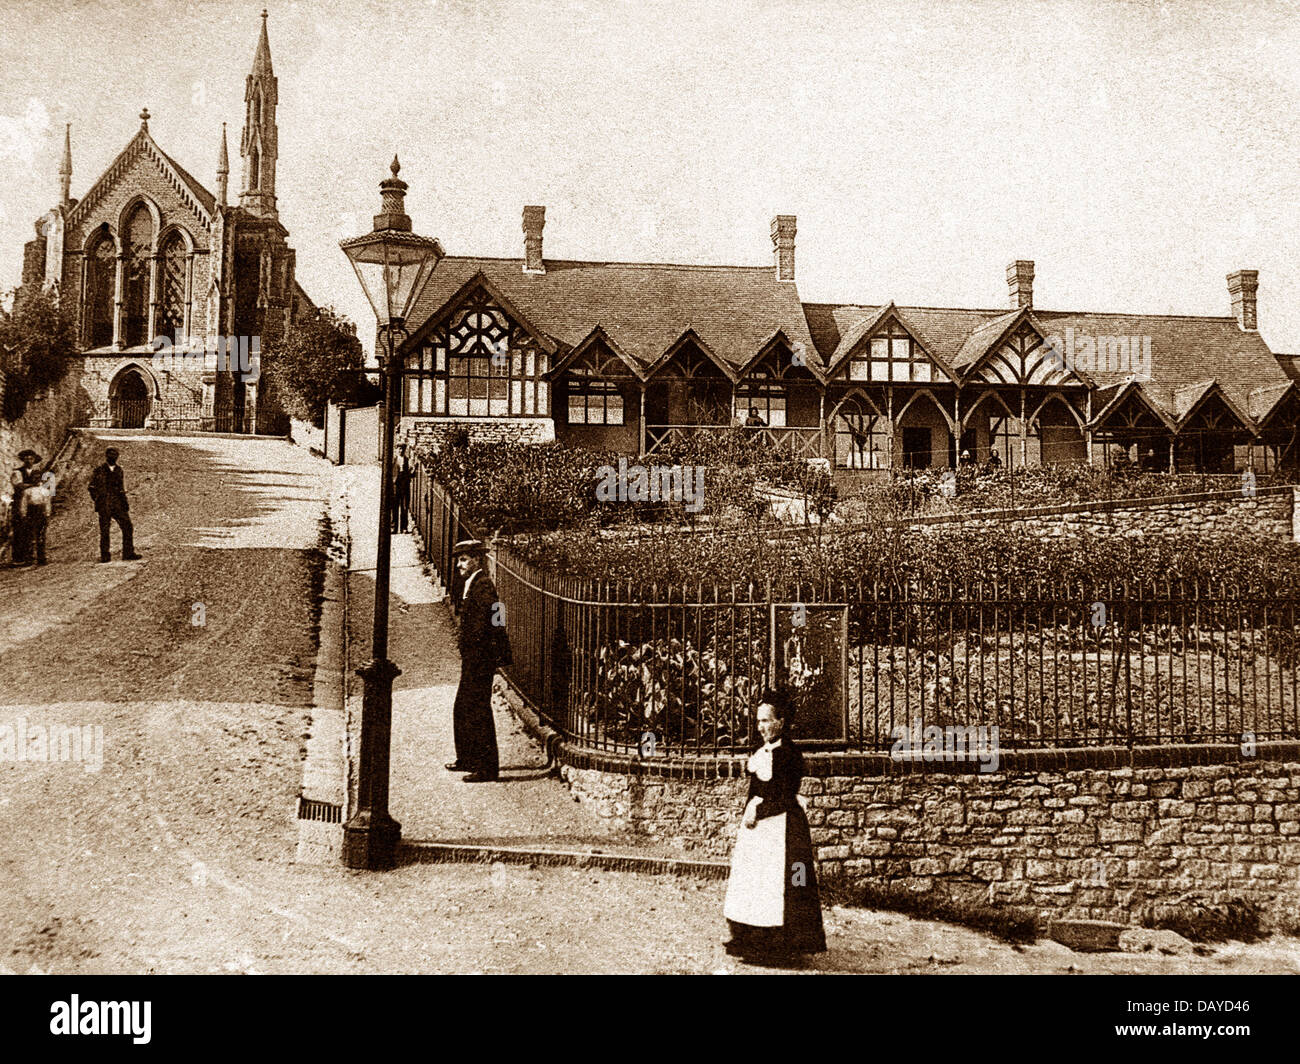 Wotton-under-Edge Tabernacle early 1900s - Stock Image